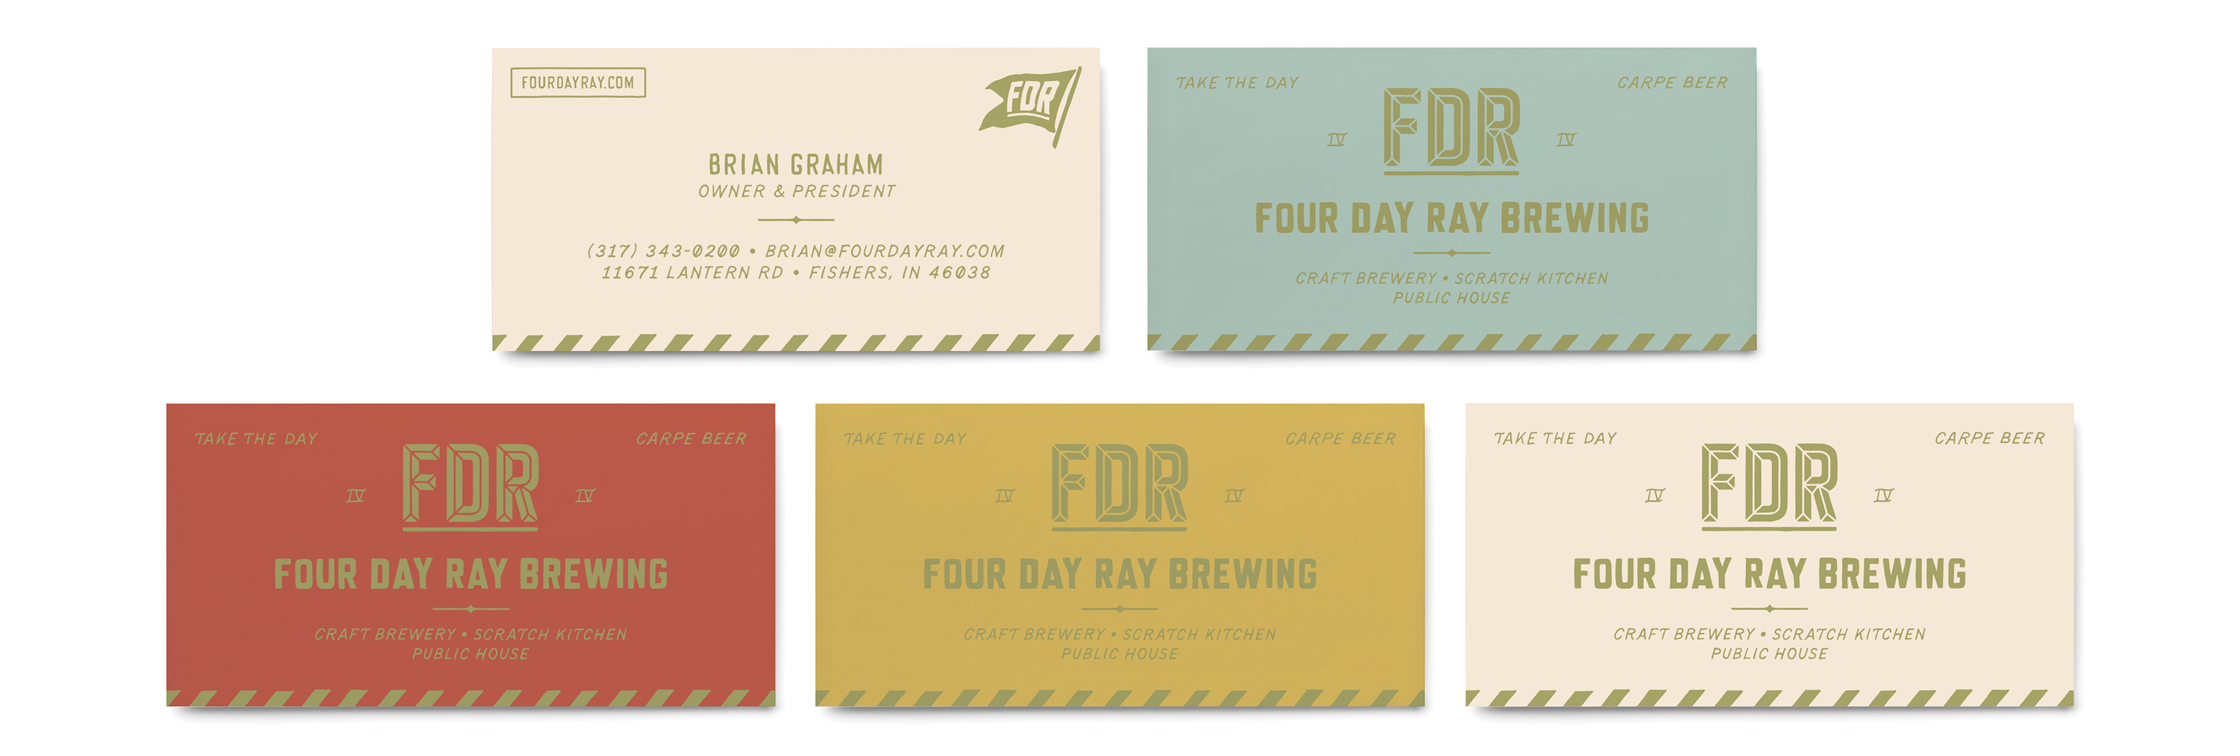 FDR Business Cards